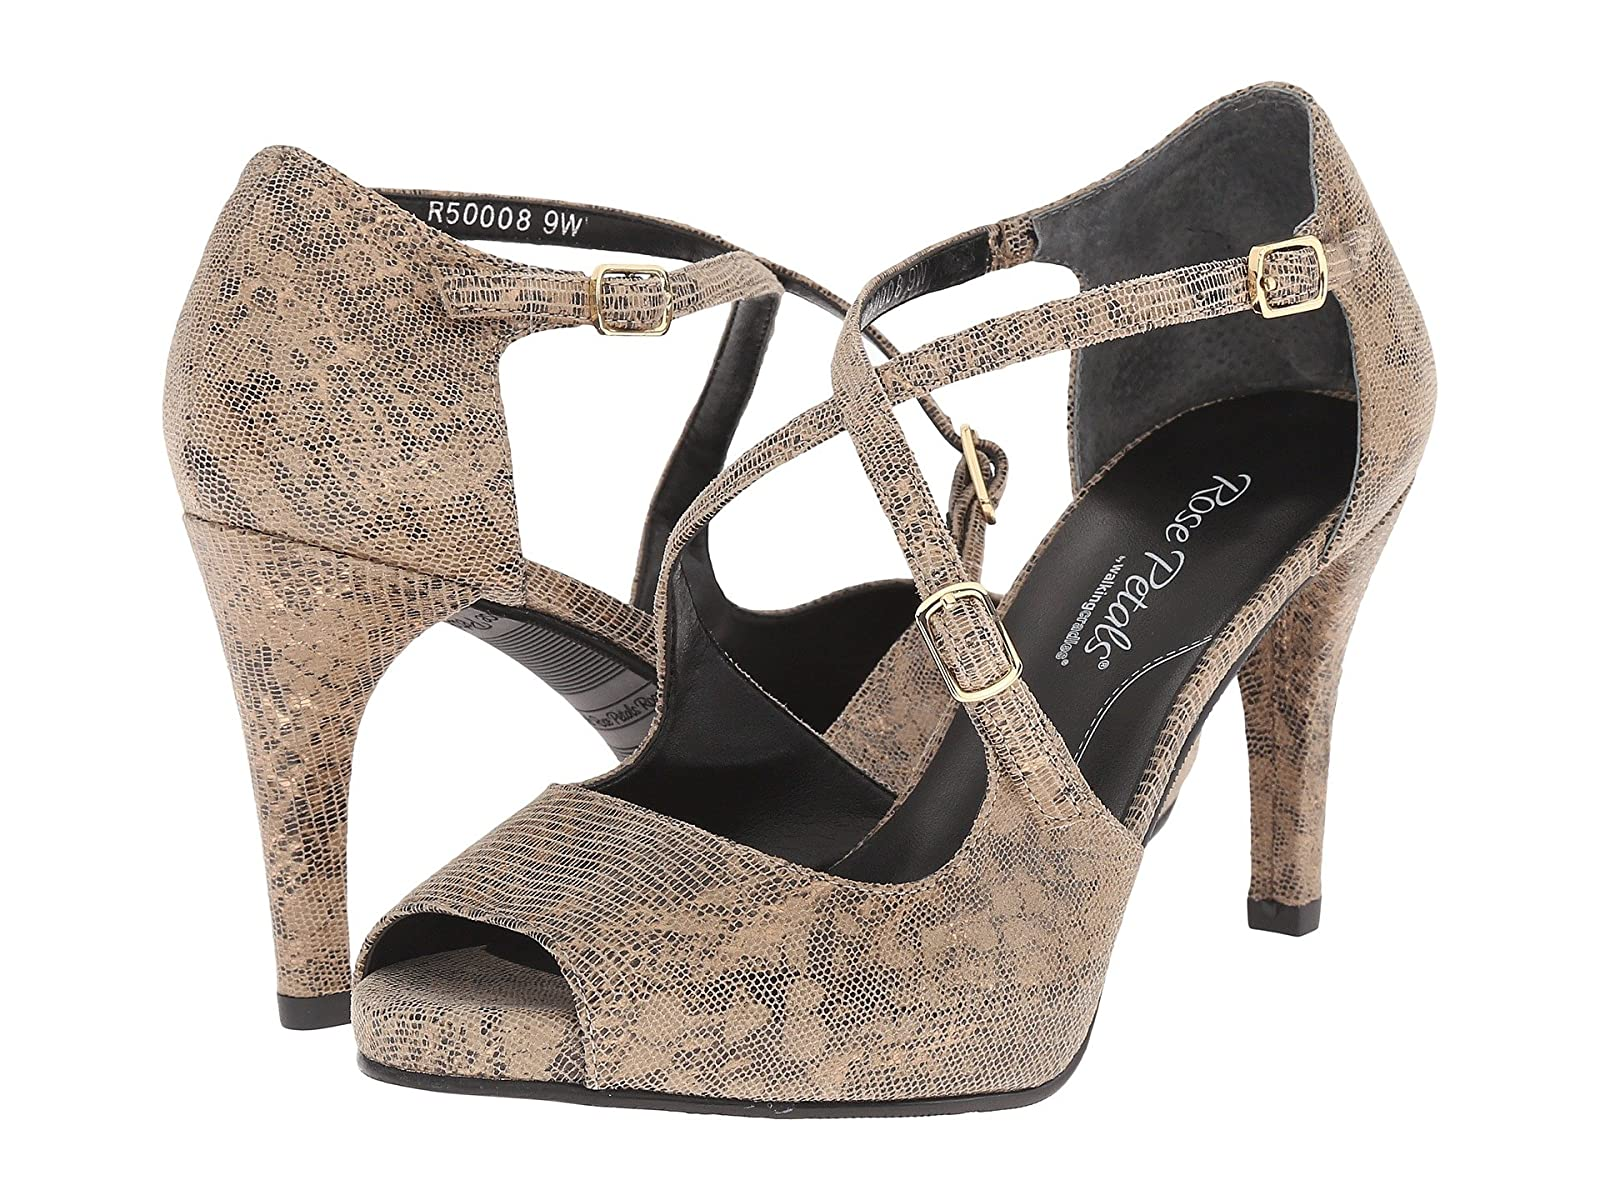 Walking Cradles LissaCheap and distinctive eye-catching shoes